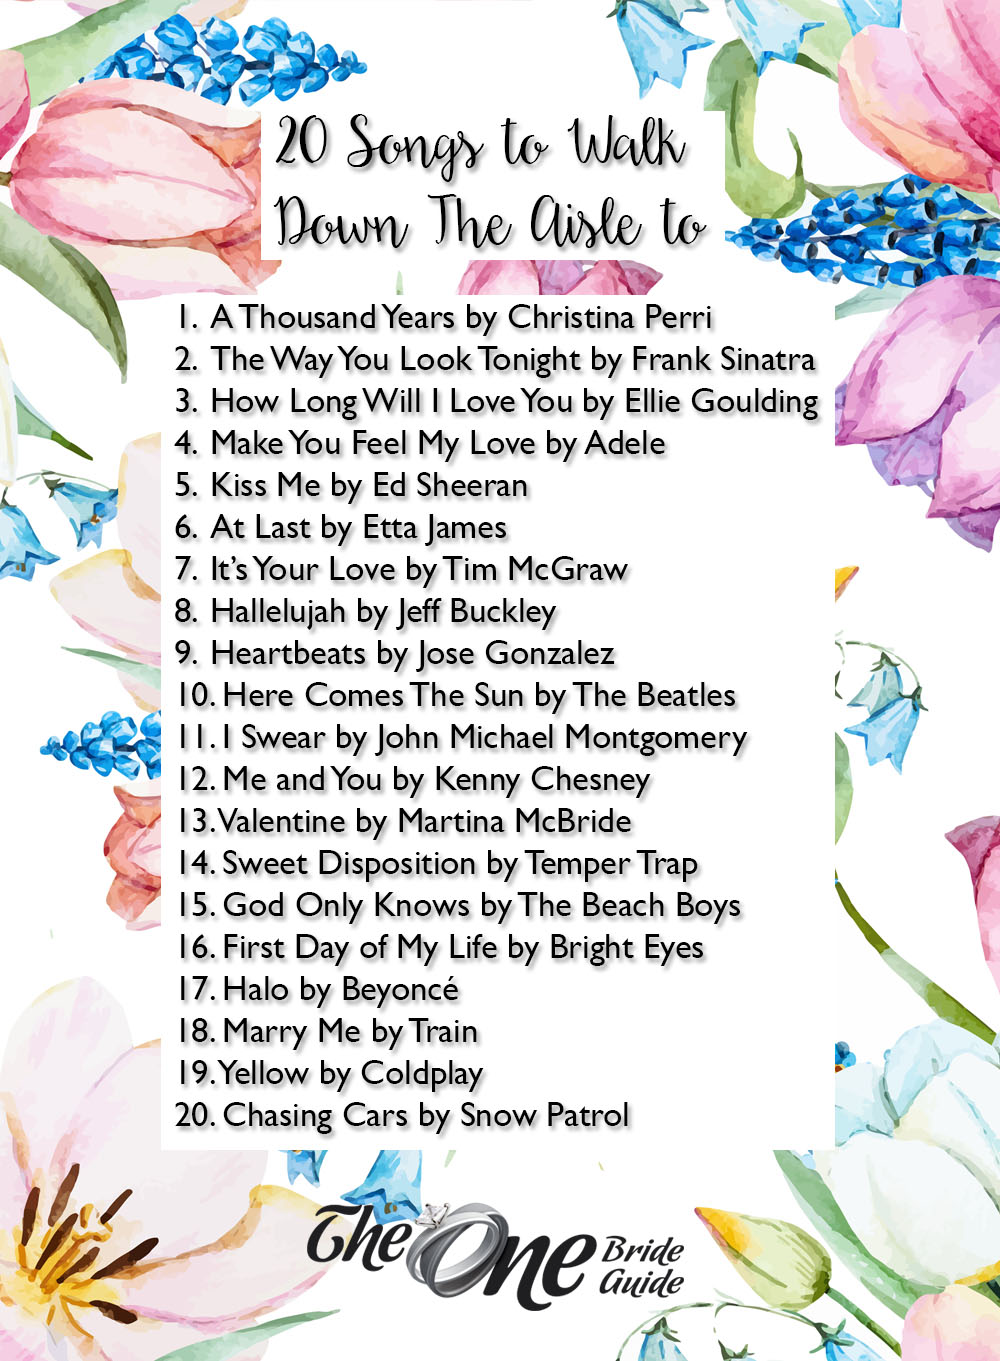 Wedding Songs Walking Down The Aisle: 20 Songs To Walk Down The Aisle To